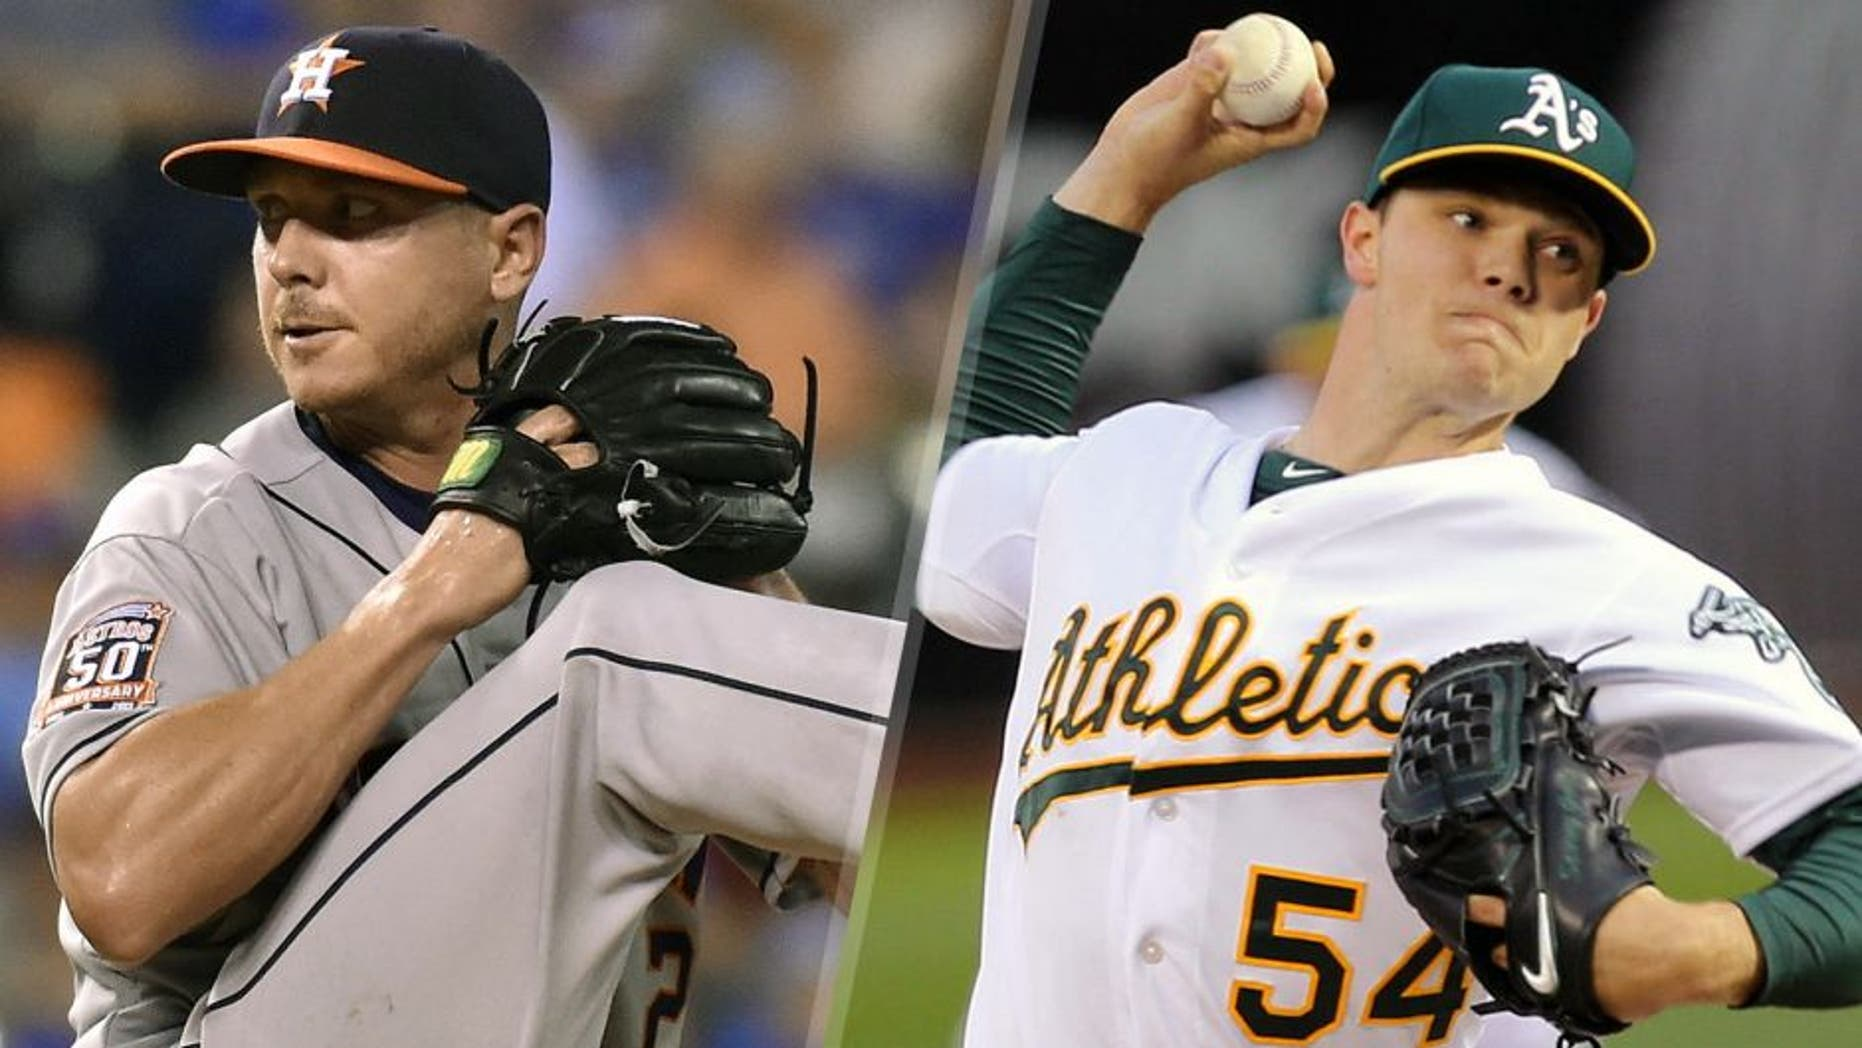 LEFT: https://author.prod1.foxsports.com/damadmin#/content/dam/fsdigital/fscom/other/images/2015/07/30/ScottKazmirDD7-30.jpg RIGHT: Apr 6, 2015; Oakland, CA, USA; Oakland Athletics starting pitcher Sonny Gray (54) throws out the first pitch against the Texas Rangers during the first inning at O.co Coliseum. Mandatory Credit: Kelley L Cox-USA TODAY Sports